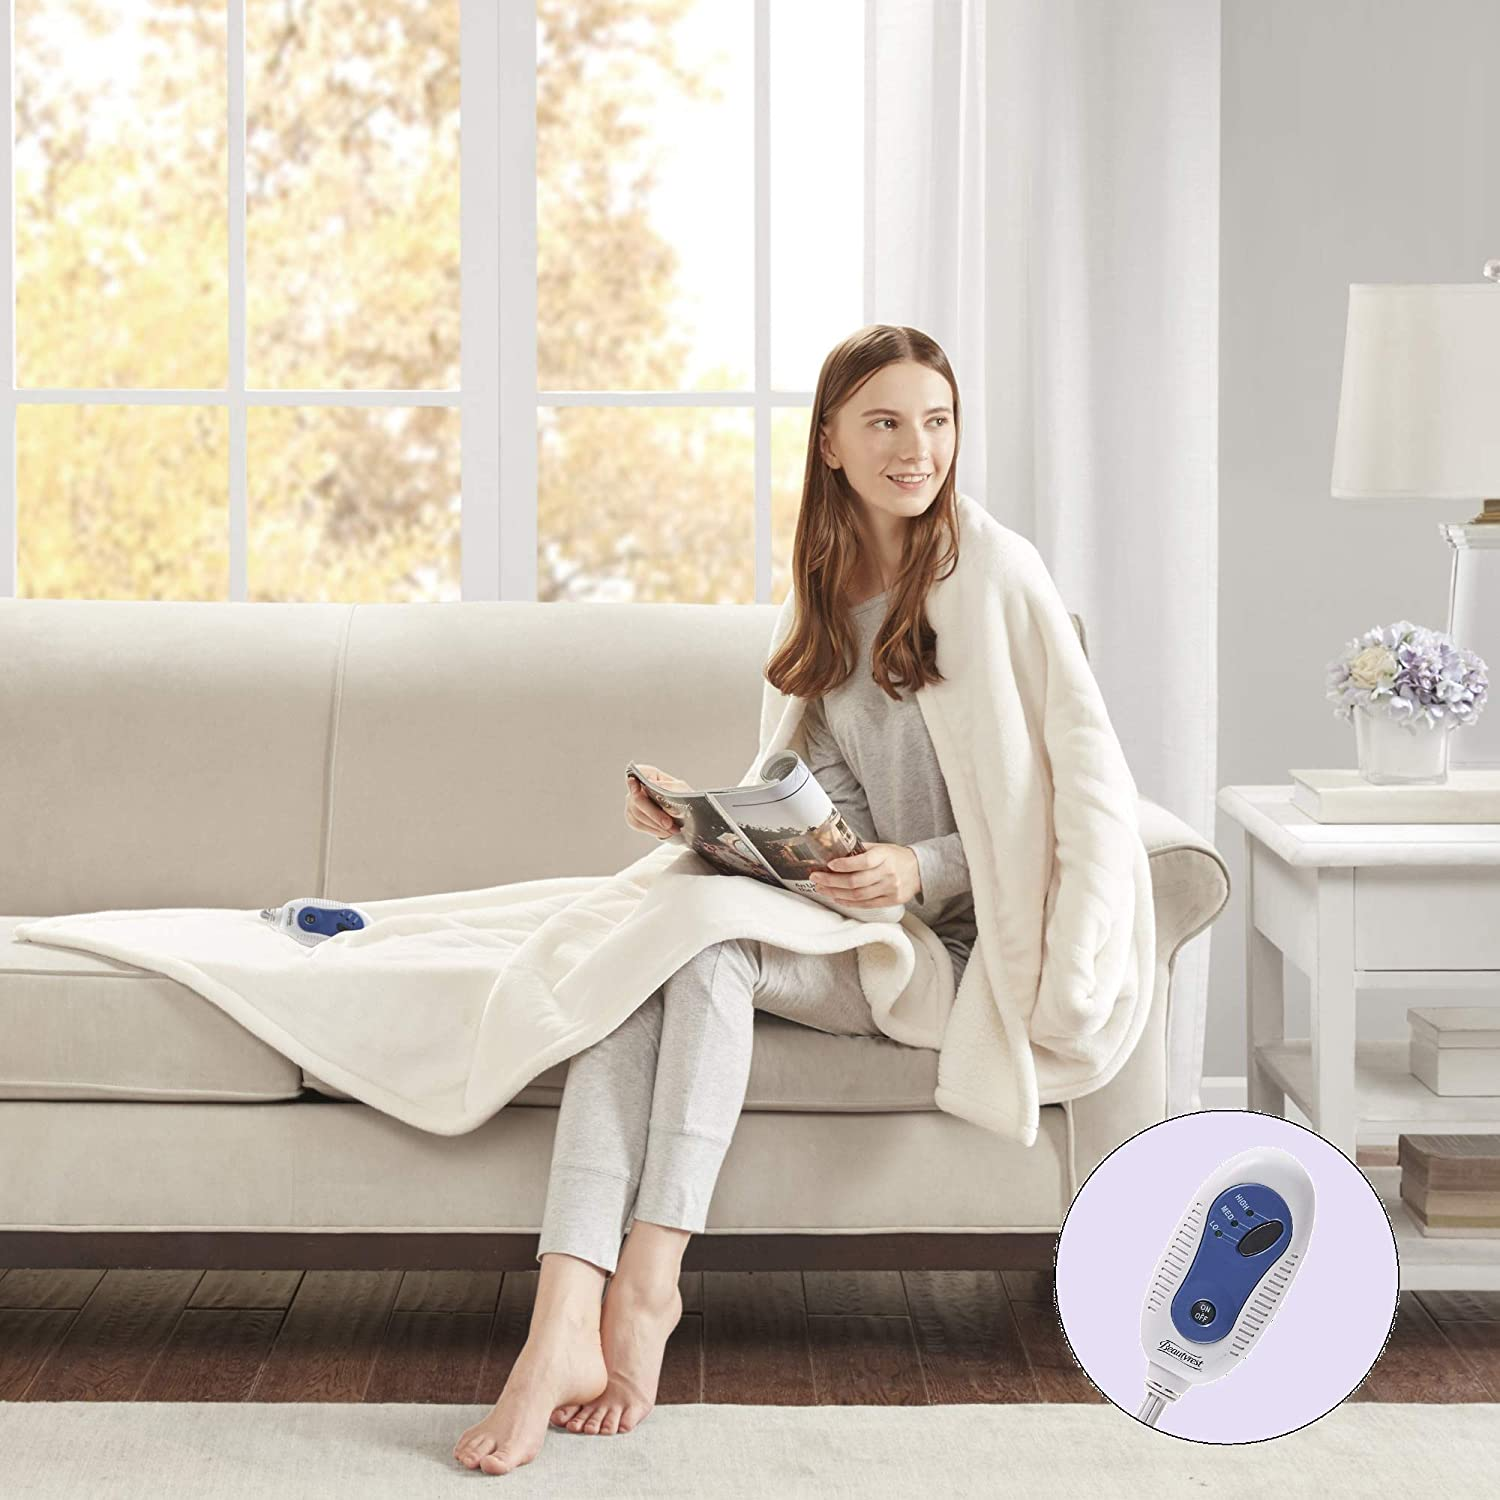 Beautyrest Plush Heated Electric Throw Blanket-Secure Comfort Technology Cozy Soft Microlight to Berber, 60x70, Ivory